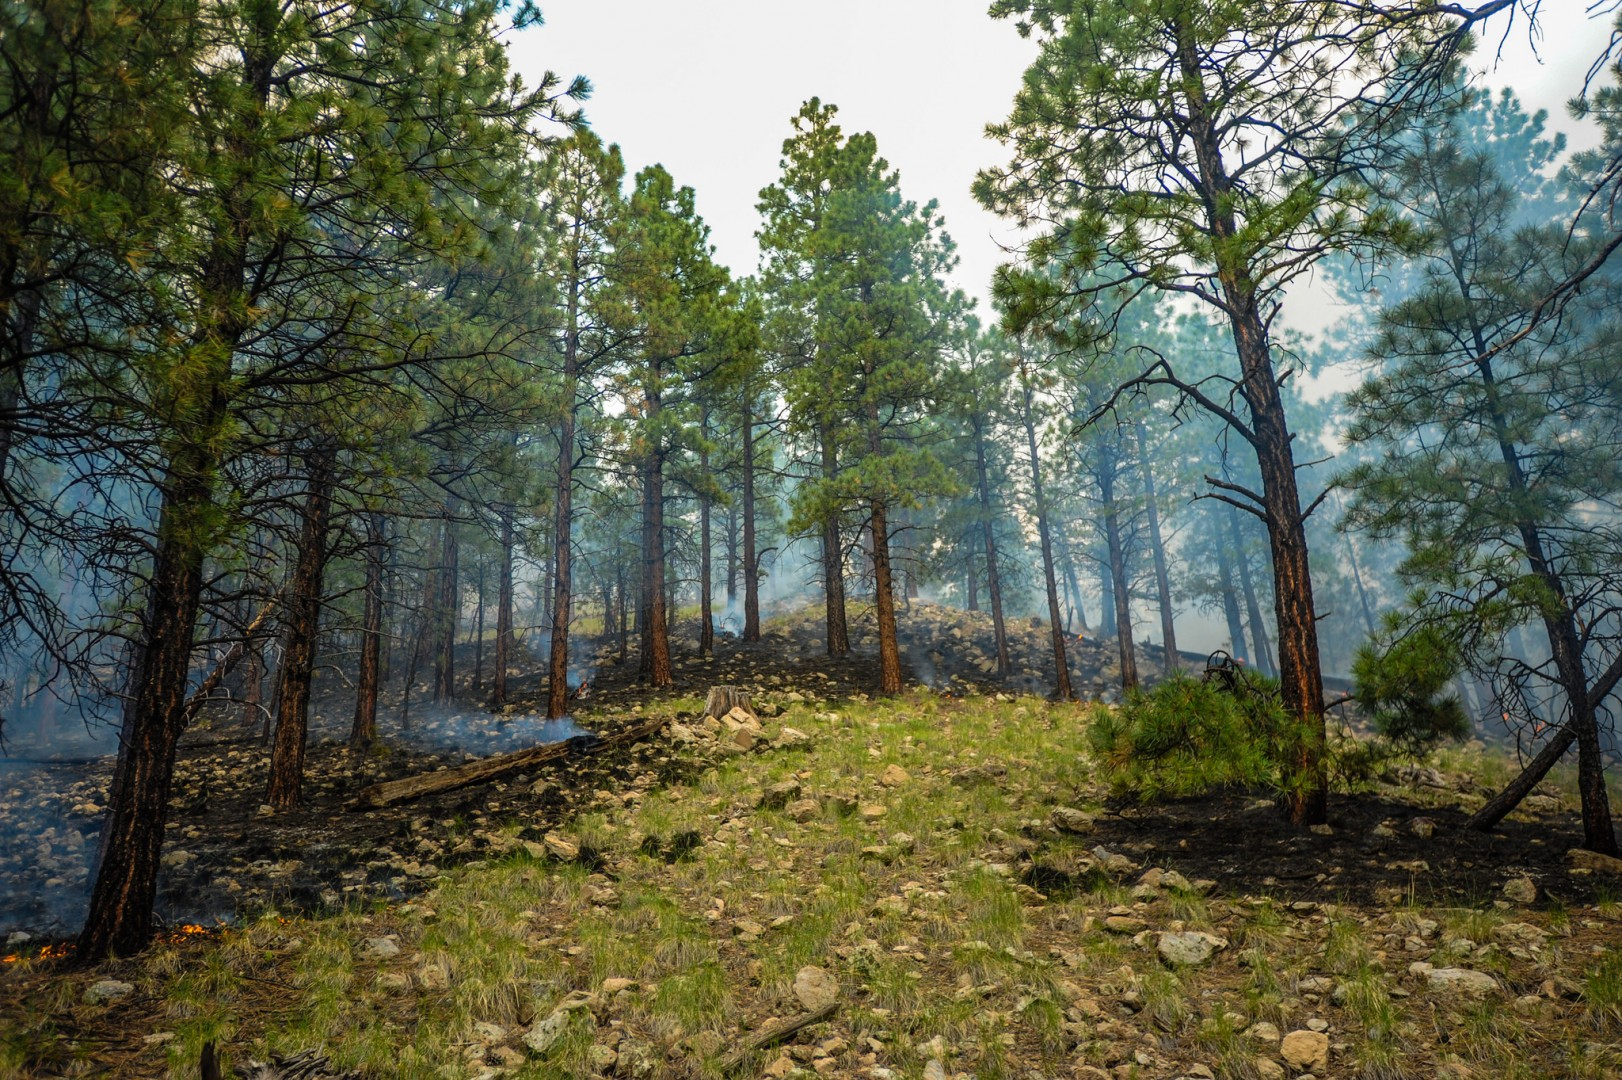 Ponderosa pine forest after fire has moved through the area. The Sitgreaves Fire Complex is being managed for resource benefit on the Williams Ranger District of the Kaibab National Forest, Arizona, July 20, 2014 | Photo by Wade Ward, U.S. Forest Service, Southwestern Region, Kaibab National Forest, St. George News